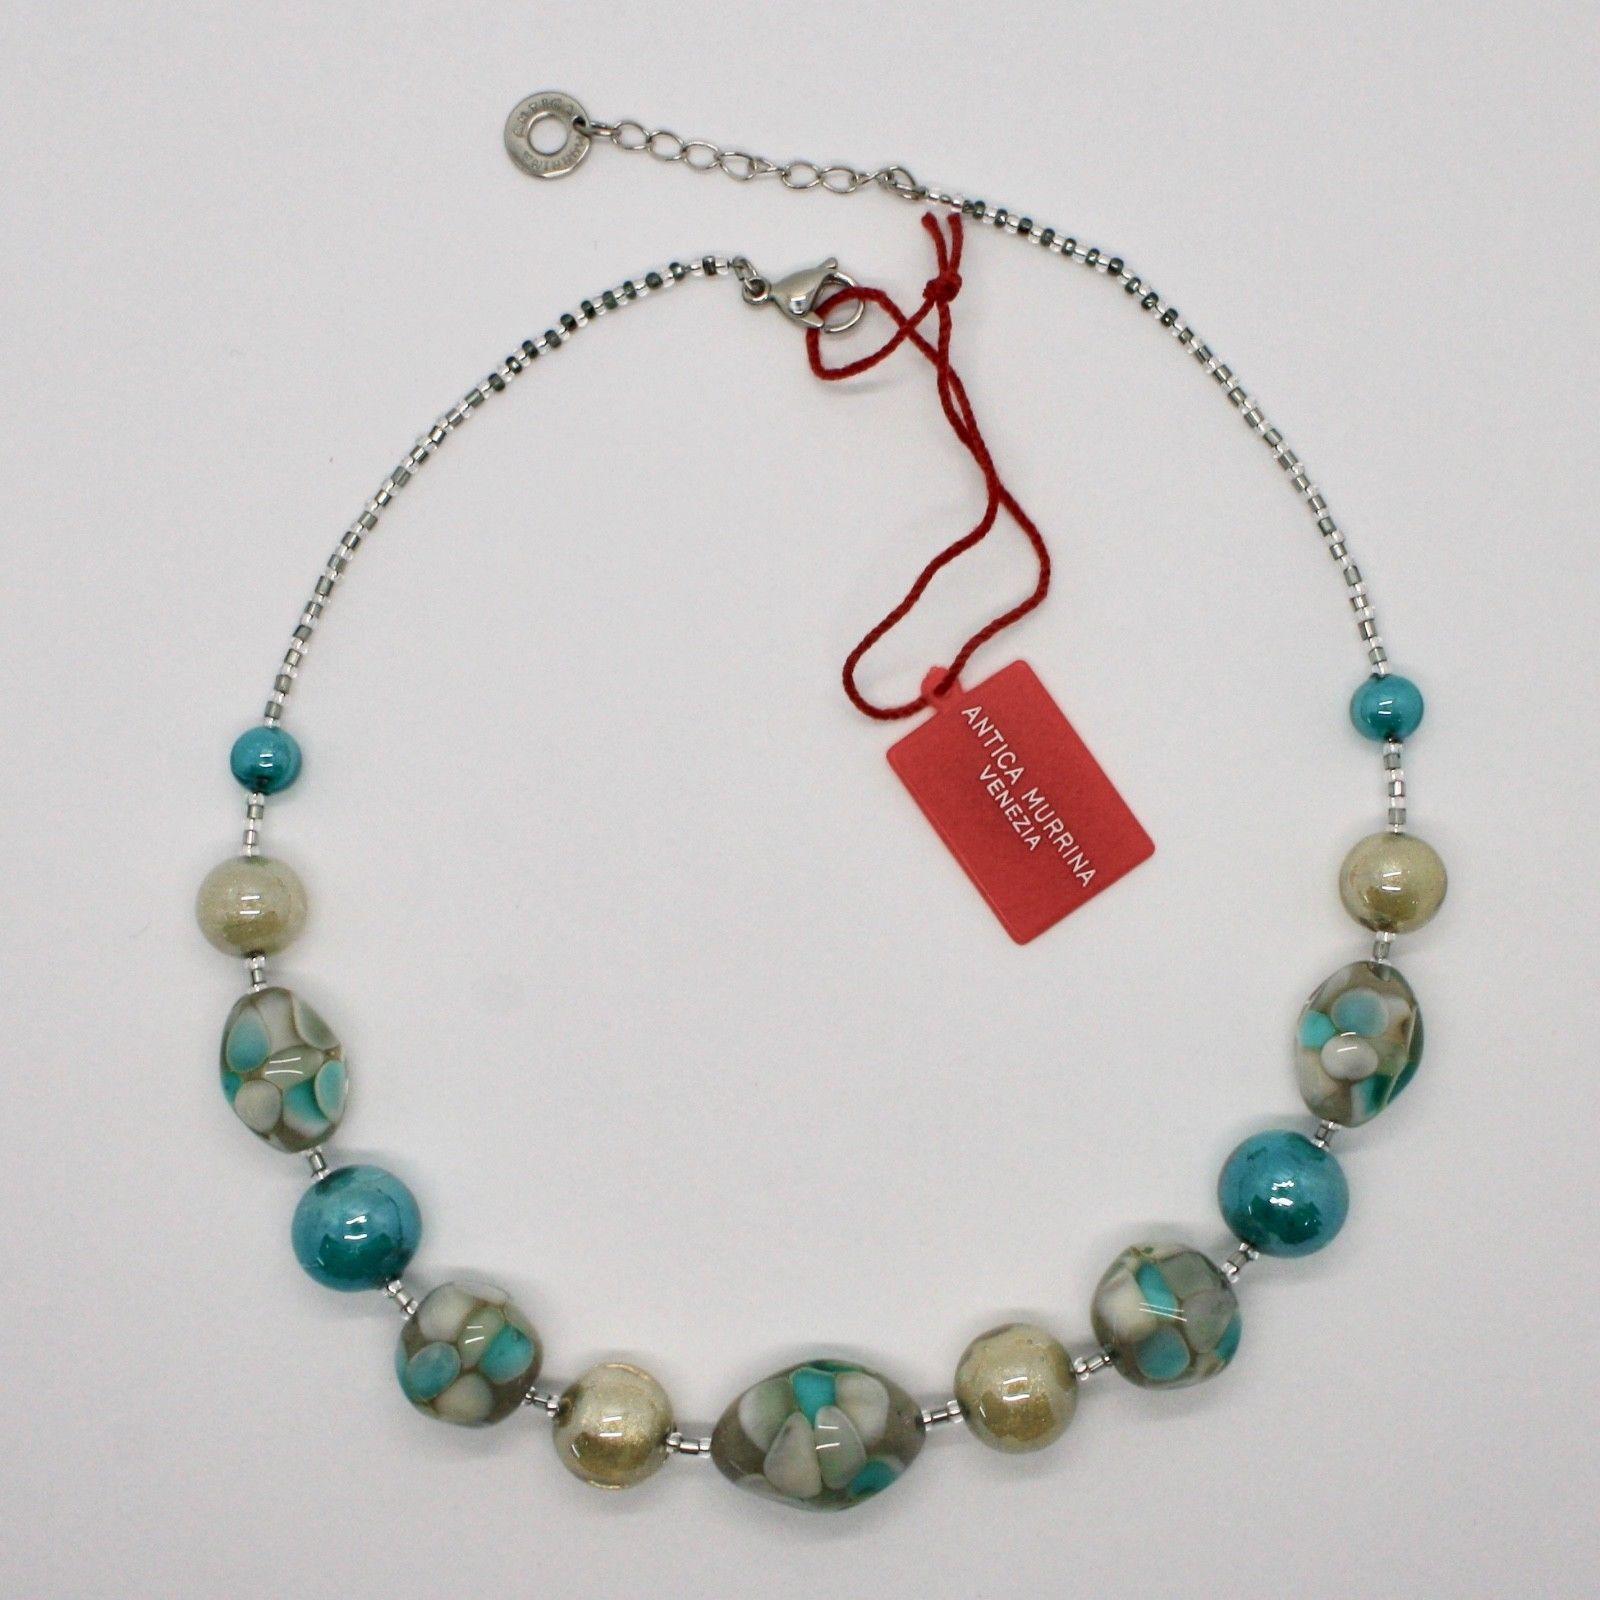 ANTICA MURRINA VENEZIA NECKLACE WITH MURANO GLASS BEIGE GREEN TURQUOISE COA10A59